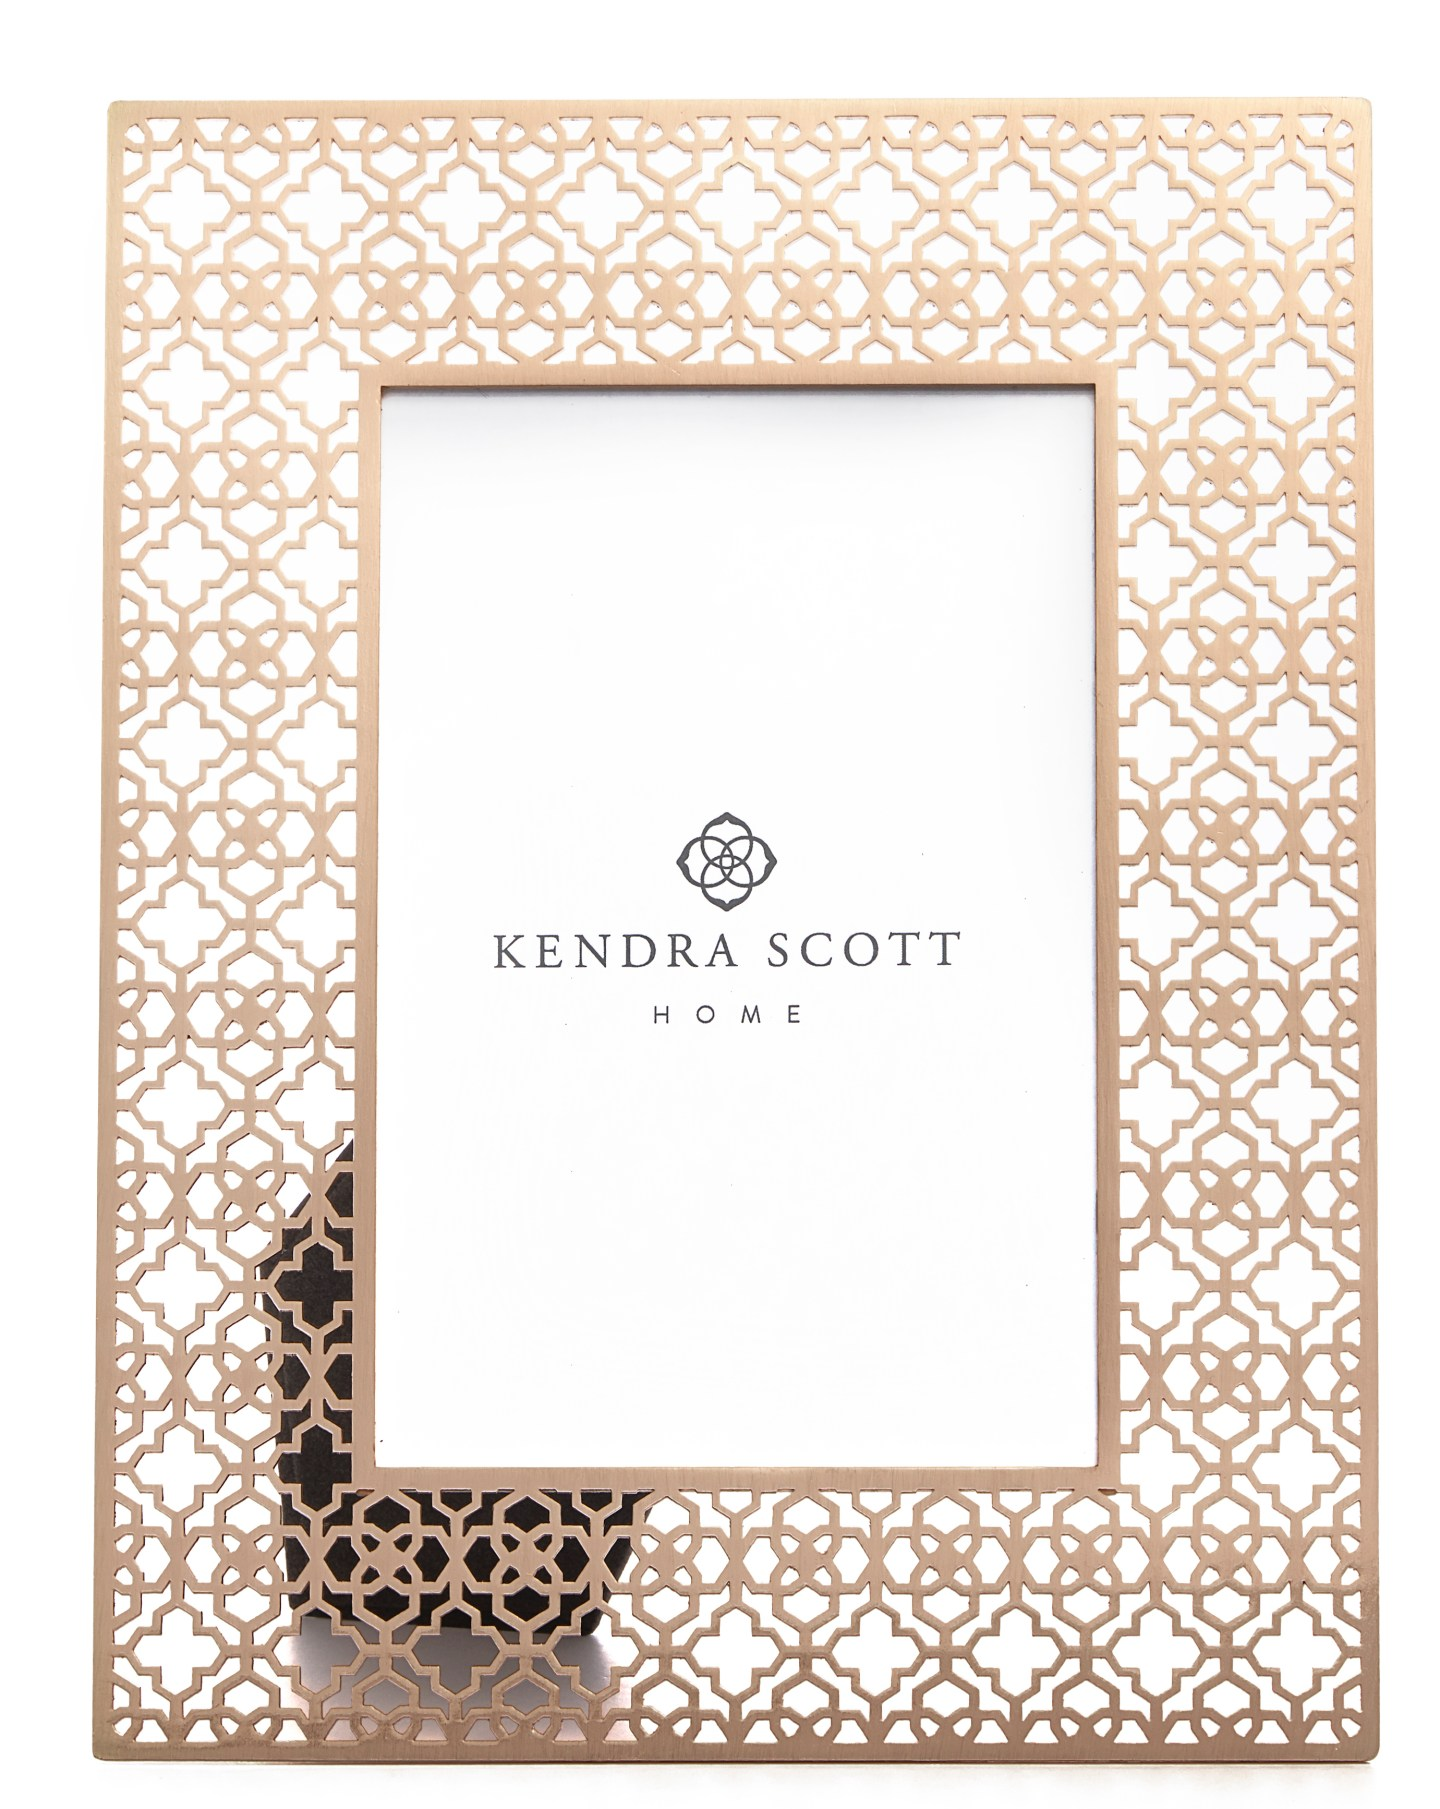 Kendra Scott Gift Guide - PIcture Frame